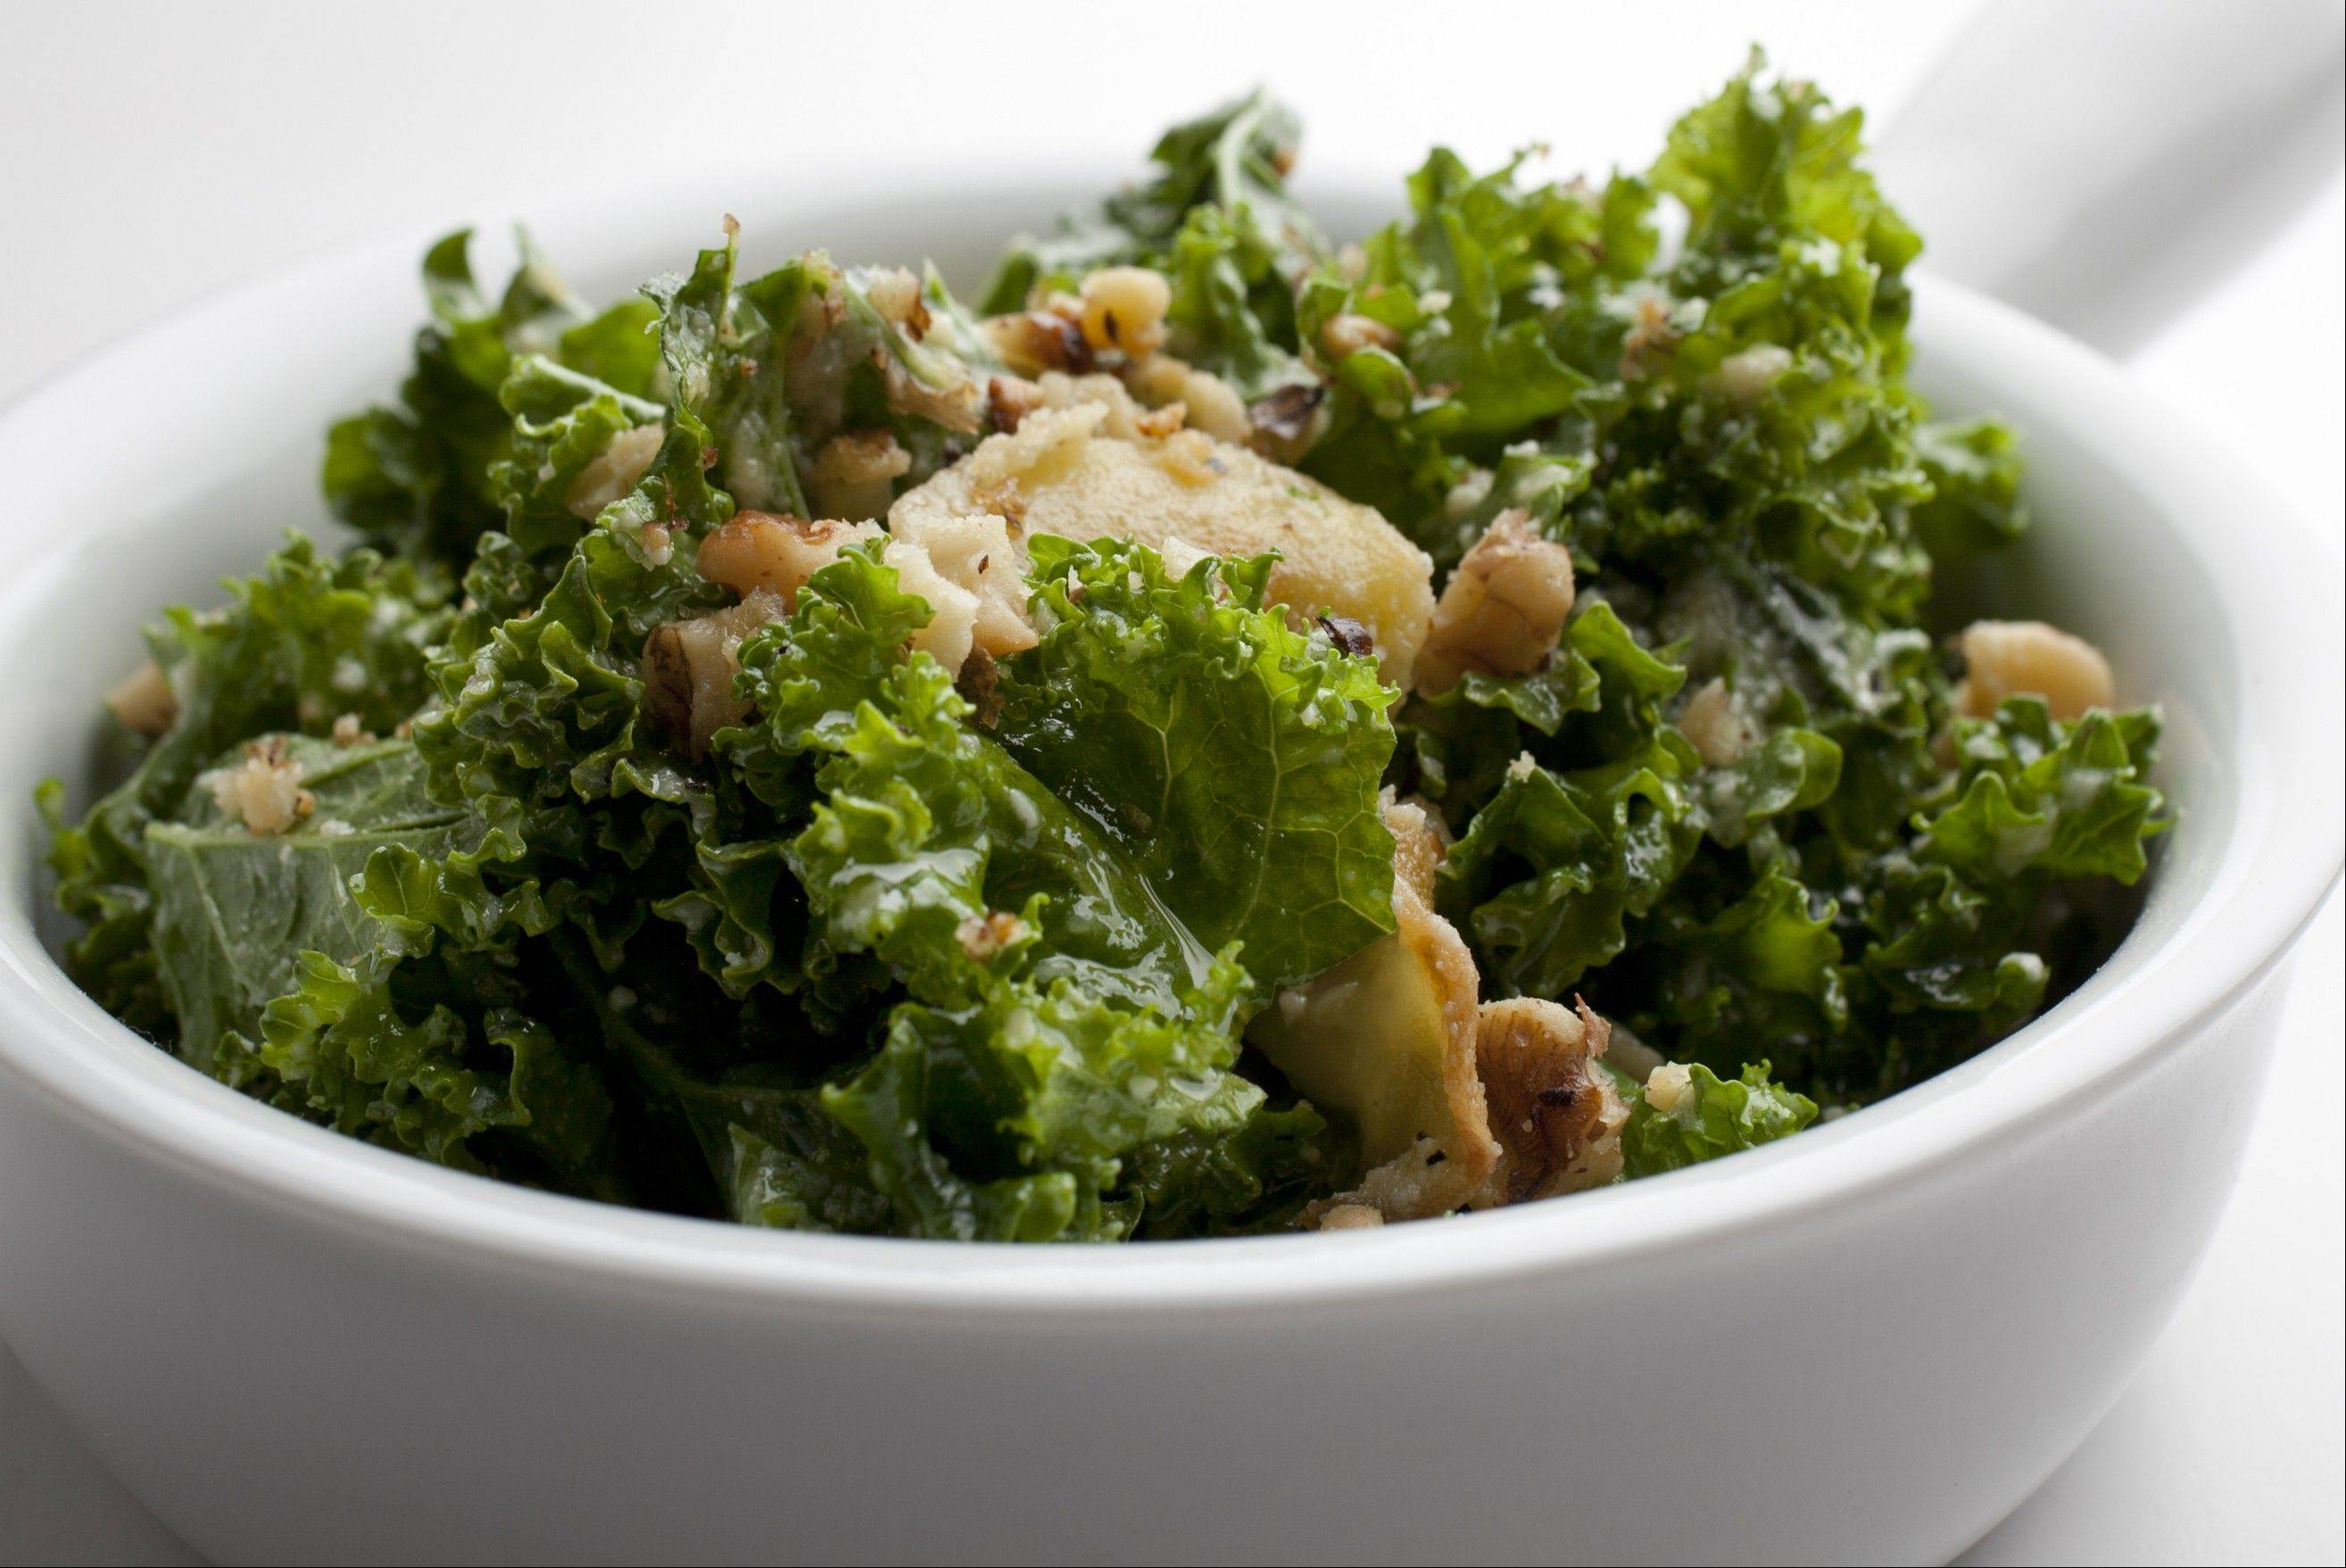 Marlow & Sons Tuscan kale salad. See recipe for this and other of the chefs' family meals on Page X.